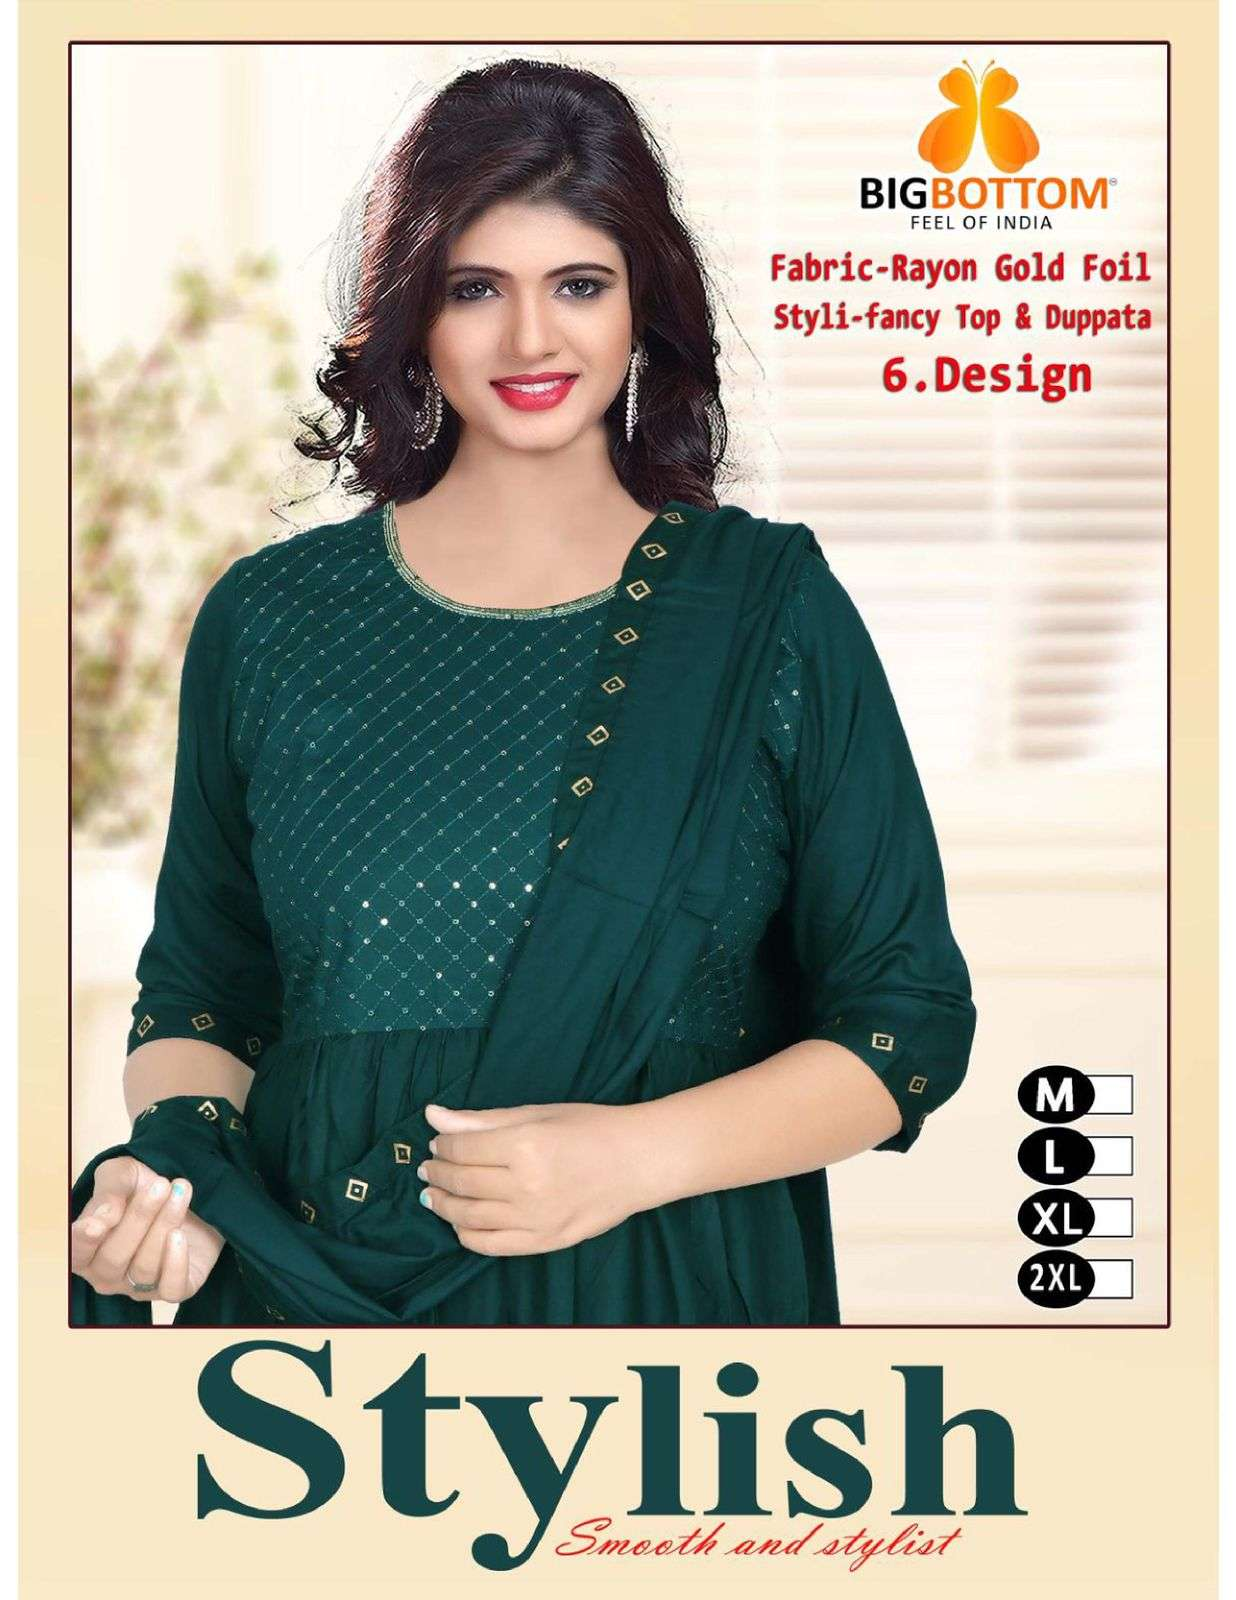 STYLISH BY TRENDY HEAVY RAYON WITH DUPATTA GOLD FOIL PRINT CATALOG